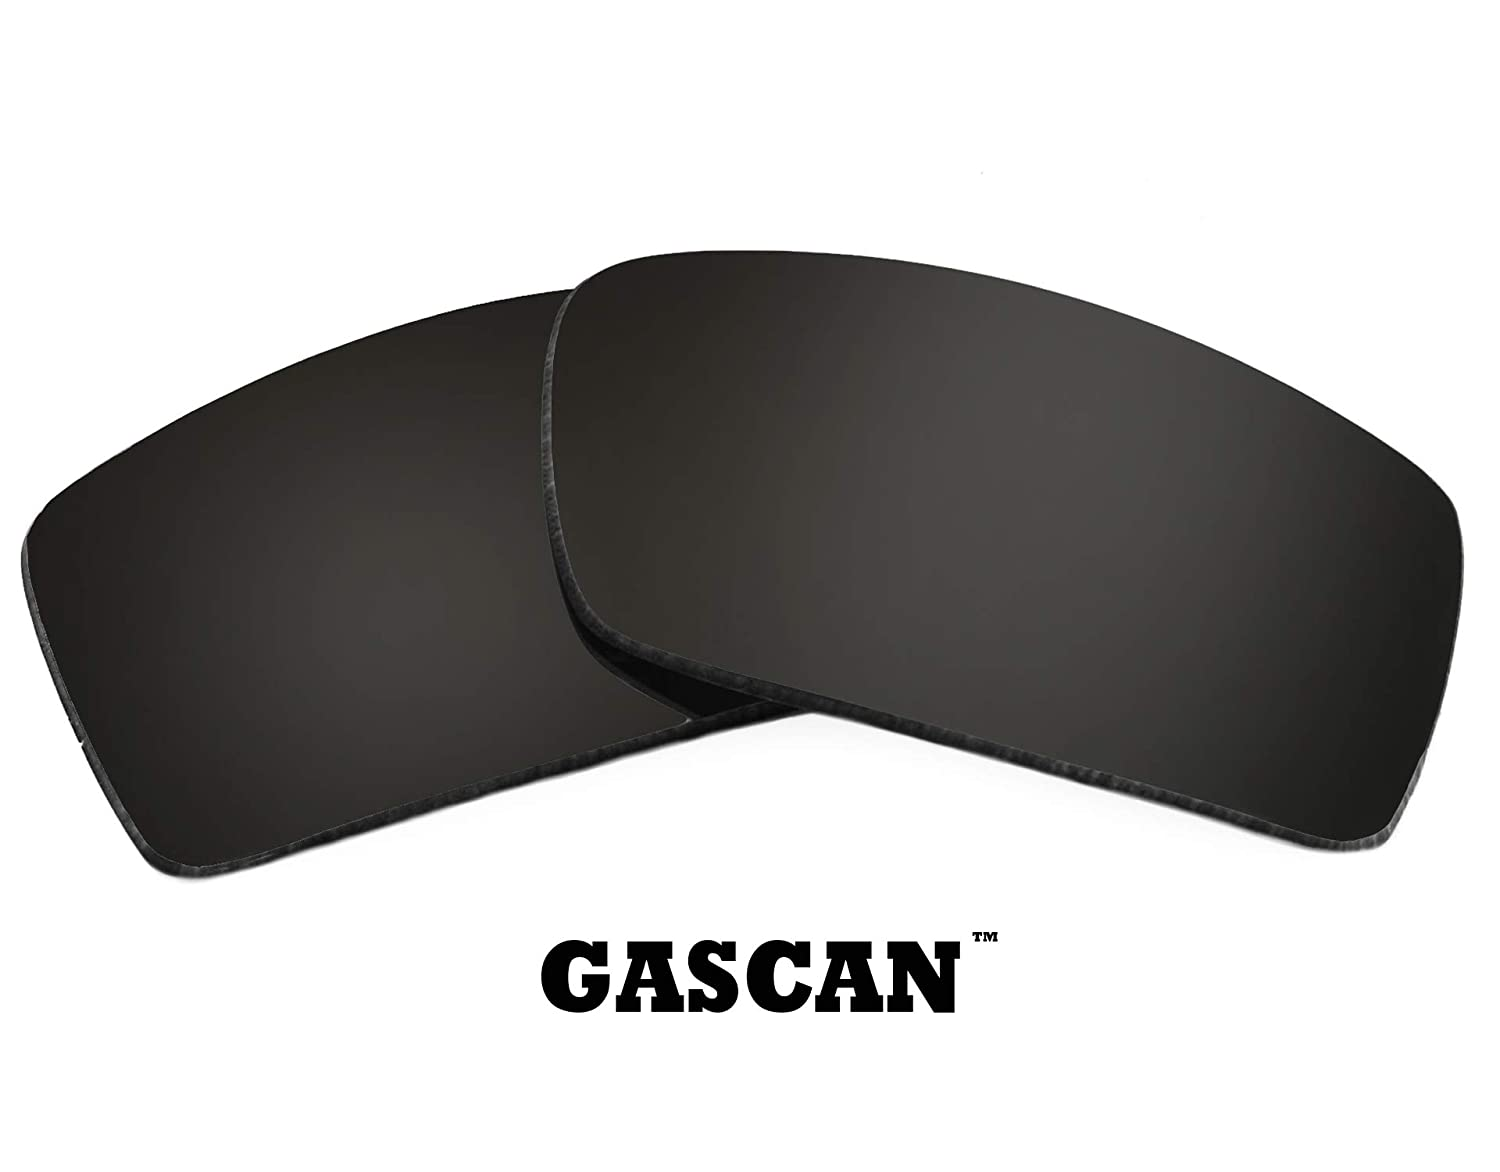 3f72626a6d97e GASCAN Replacement Lenses Advanced Black by SEEK fits OAKLEY Sunglasses at  Amazon Men s Clothing store